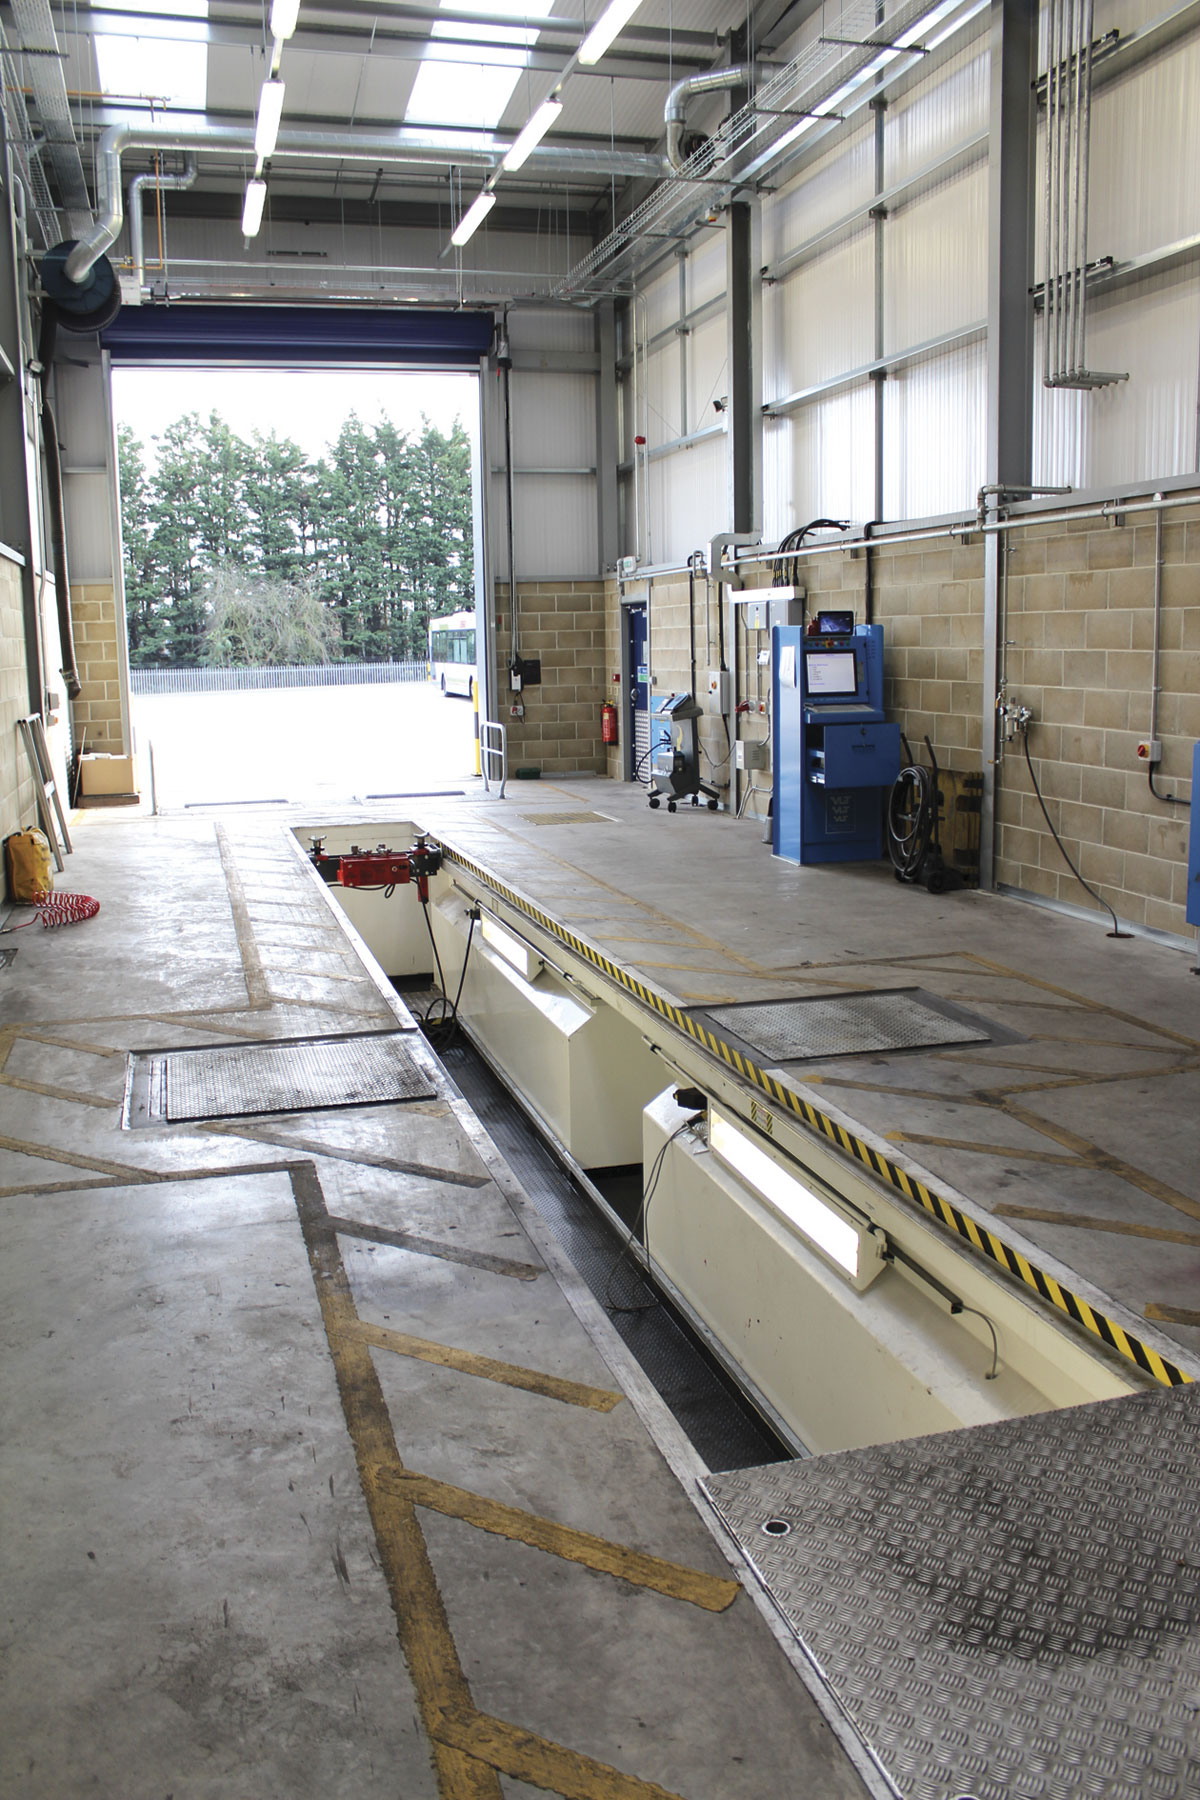 Fully equipped to DVSA standards, it is hoped the new MOT bay will receive authorisation for use as an ATF facility.